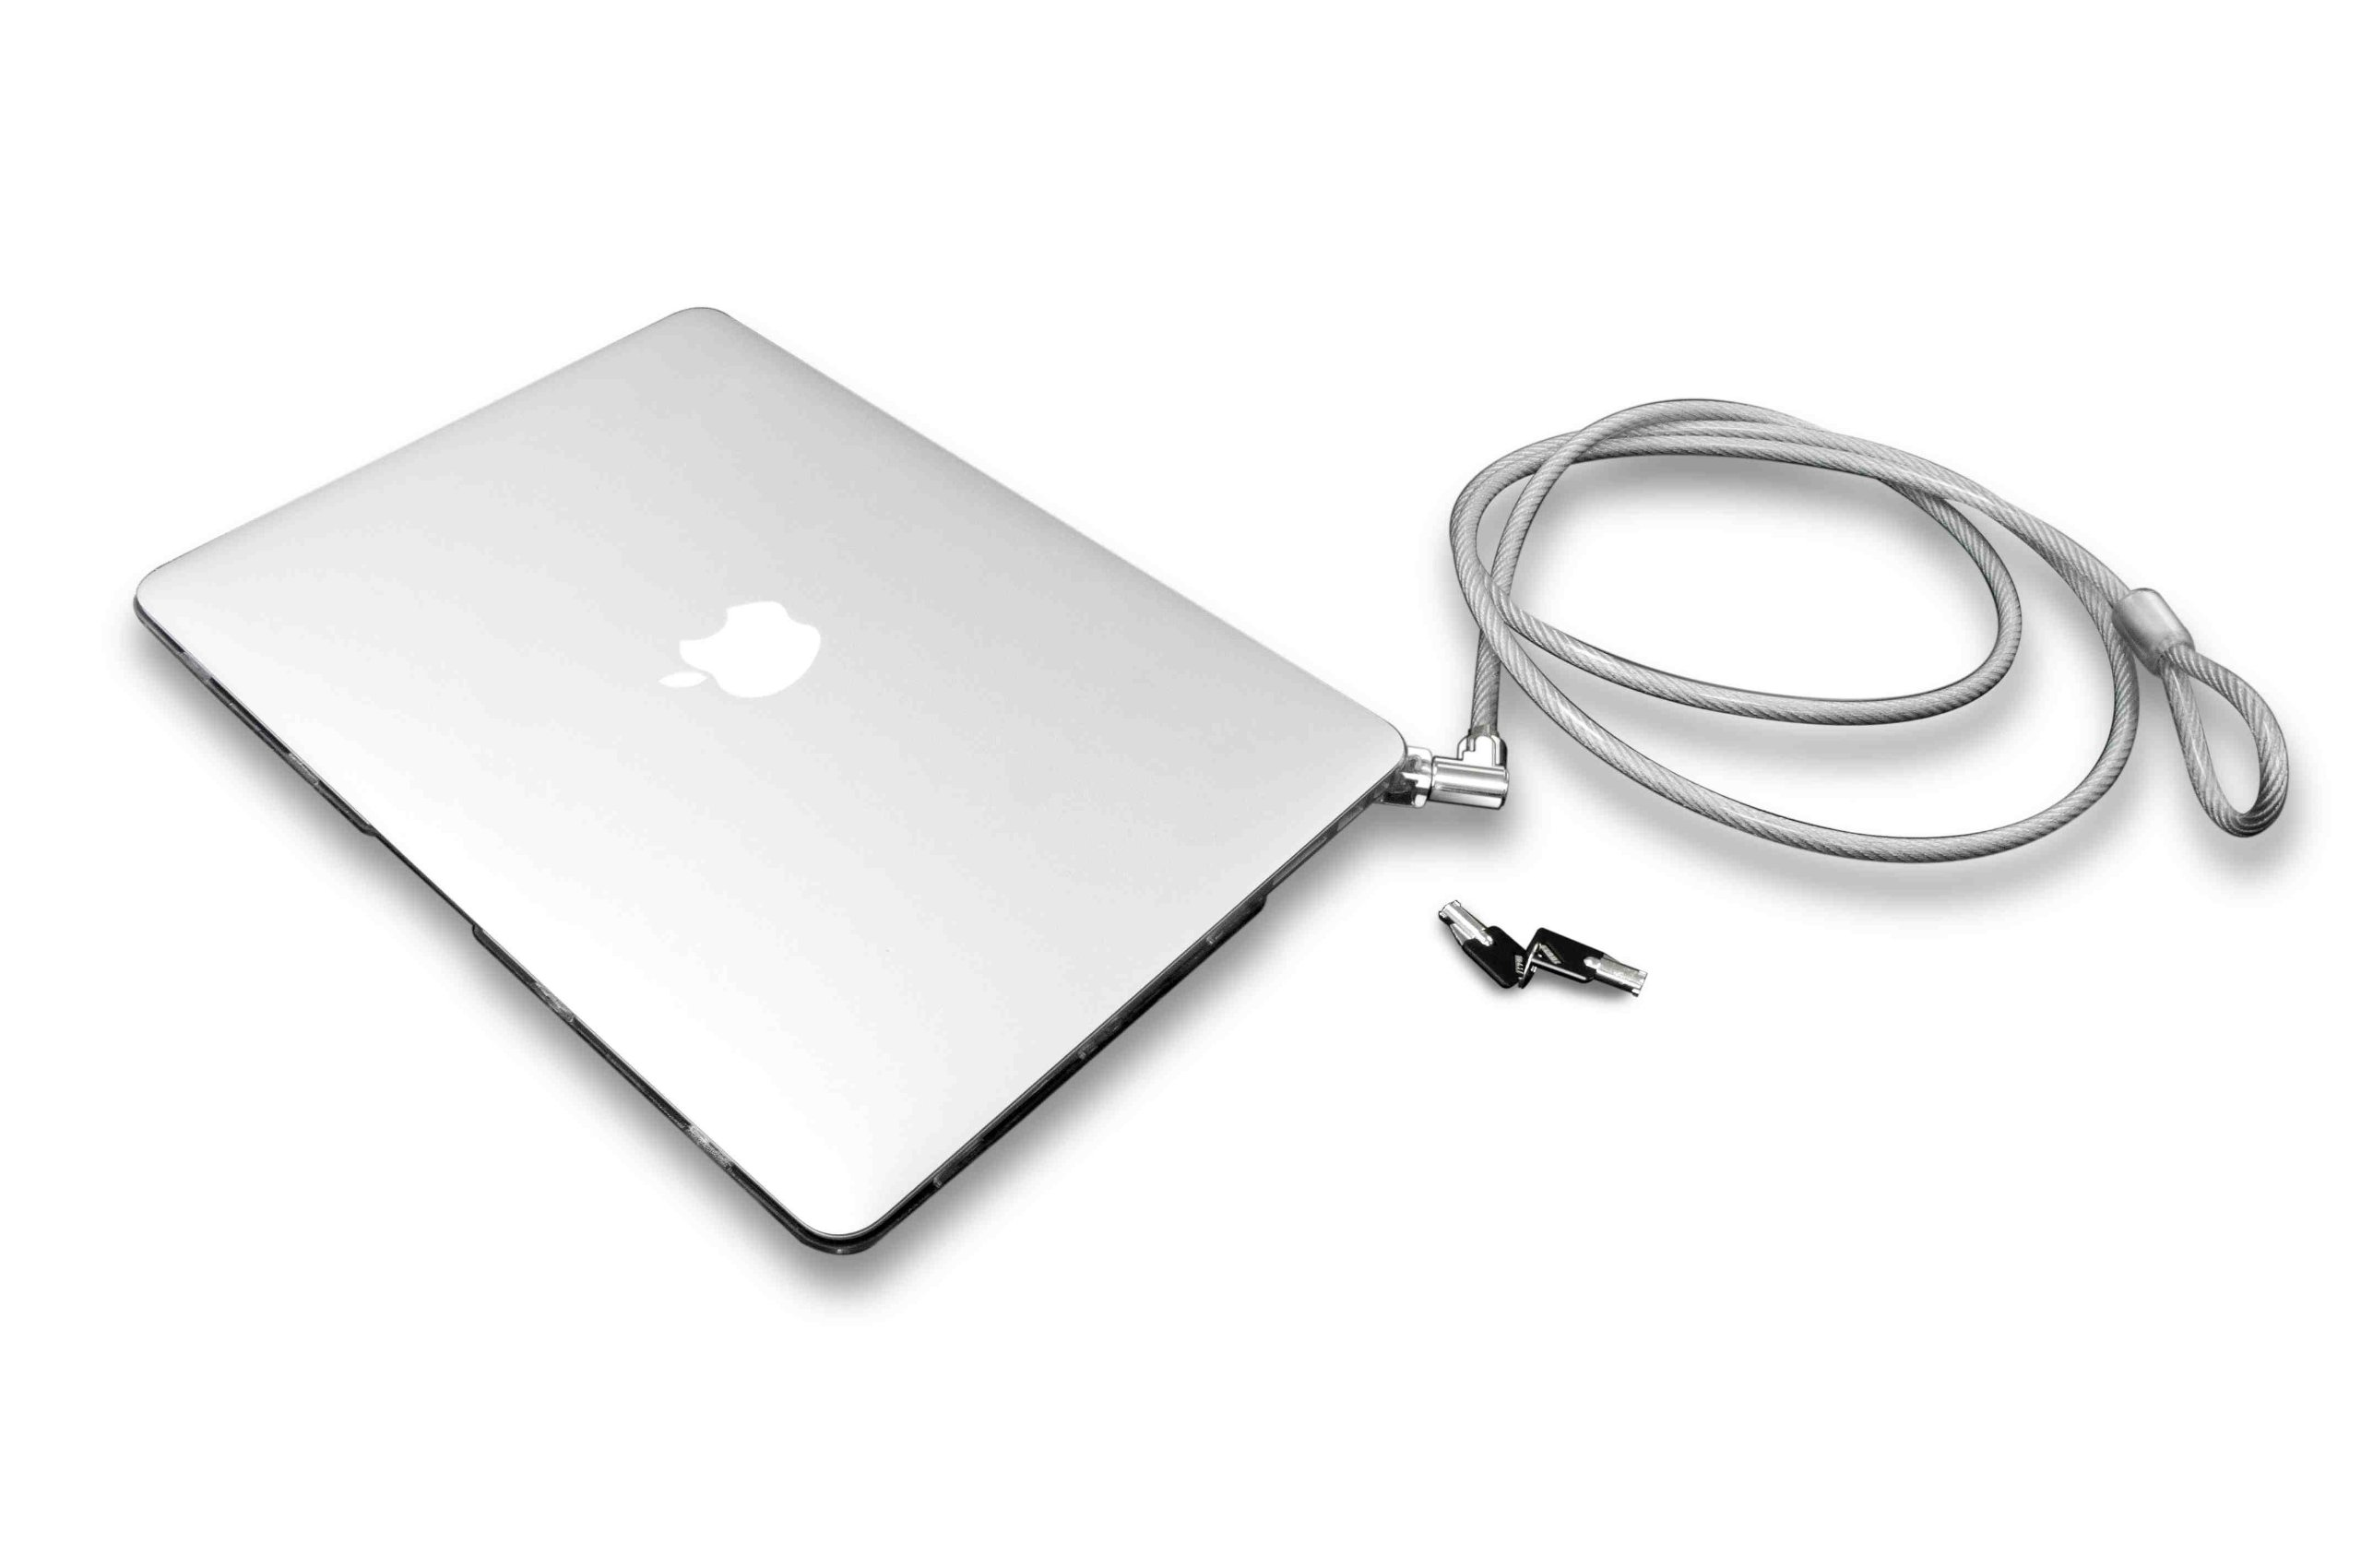 Maclocks MBA13BUN Security Laptop Case and Cable Lock for MacBook Air 13 Inch by Compulocks